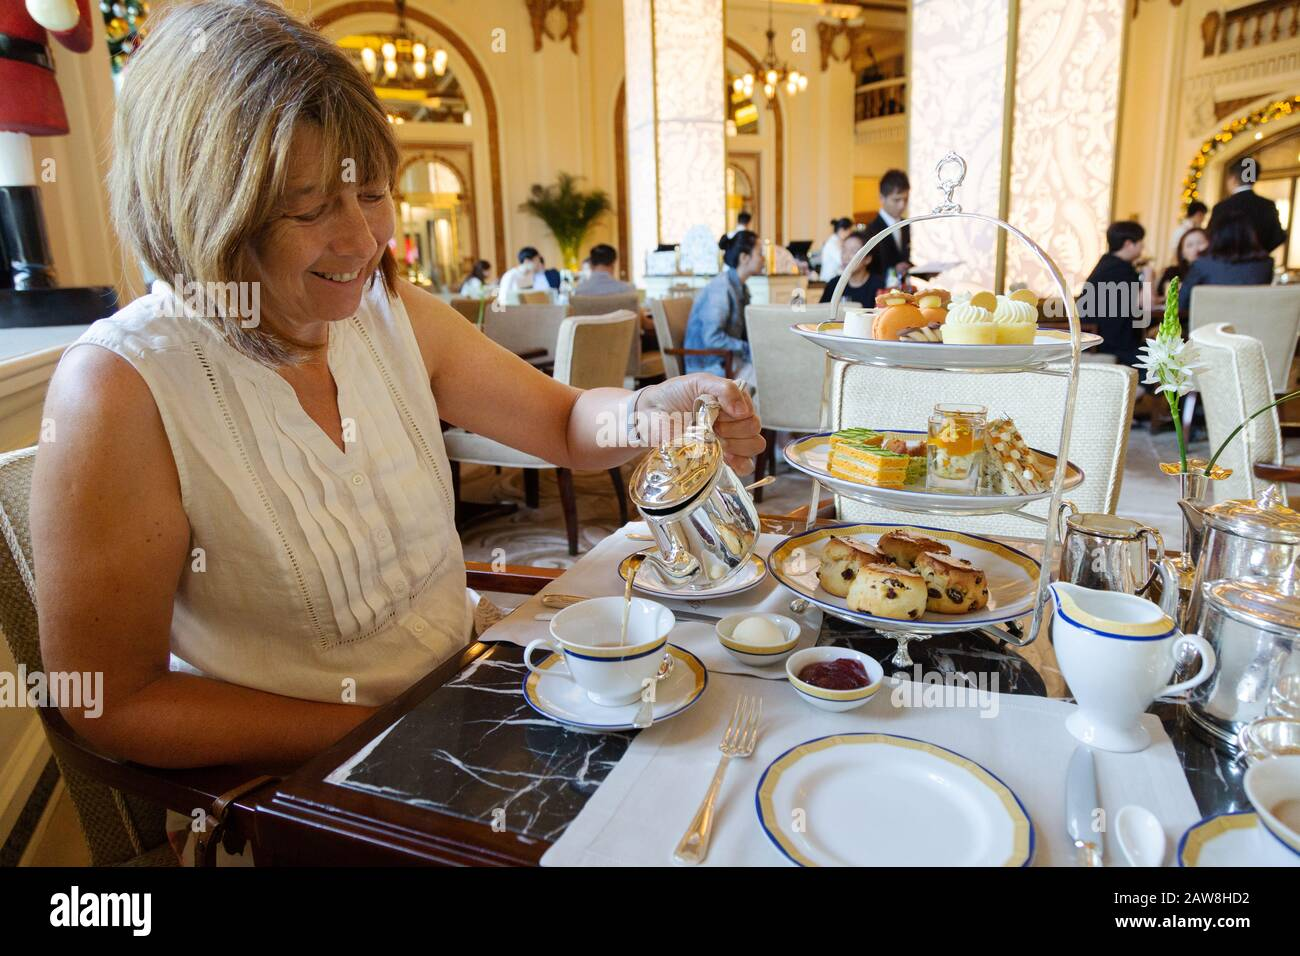 a-middle-aged-caucasian-woman-having-afternoon-tea-the-peninsula-hotel-hong-kong-asia-2AW8HD2.jpg